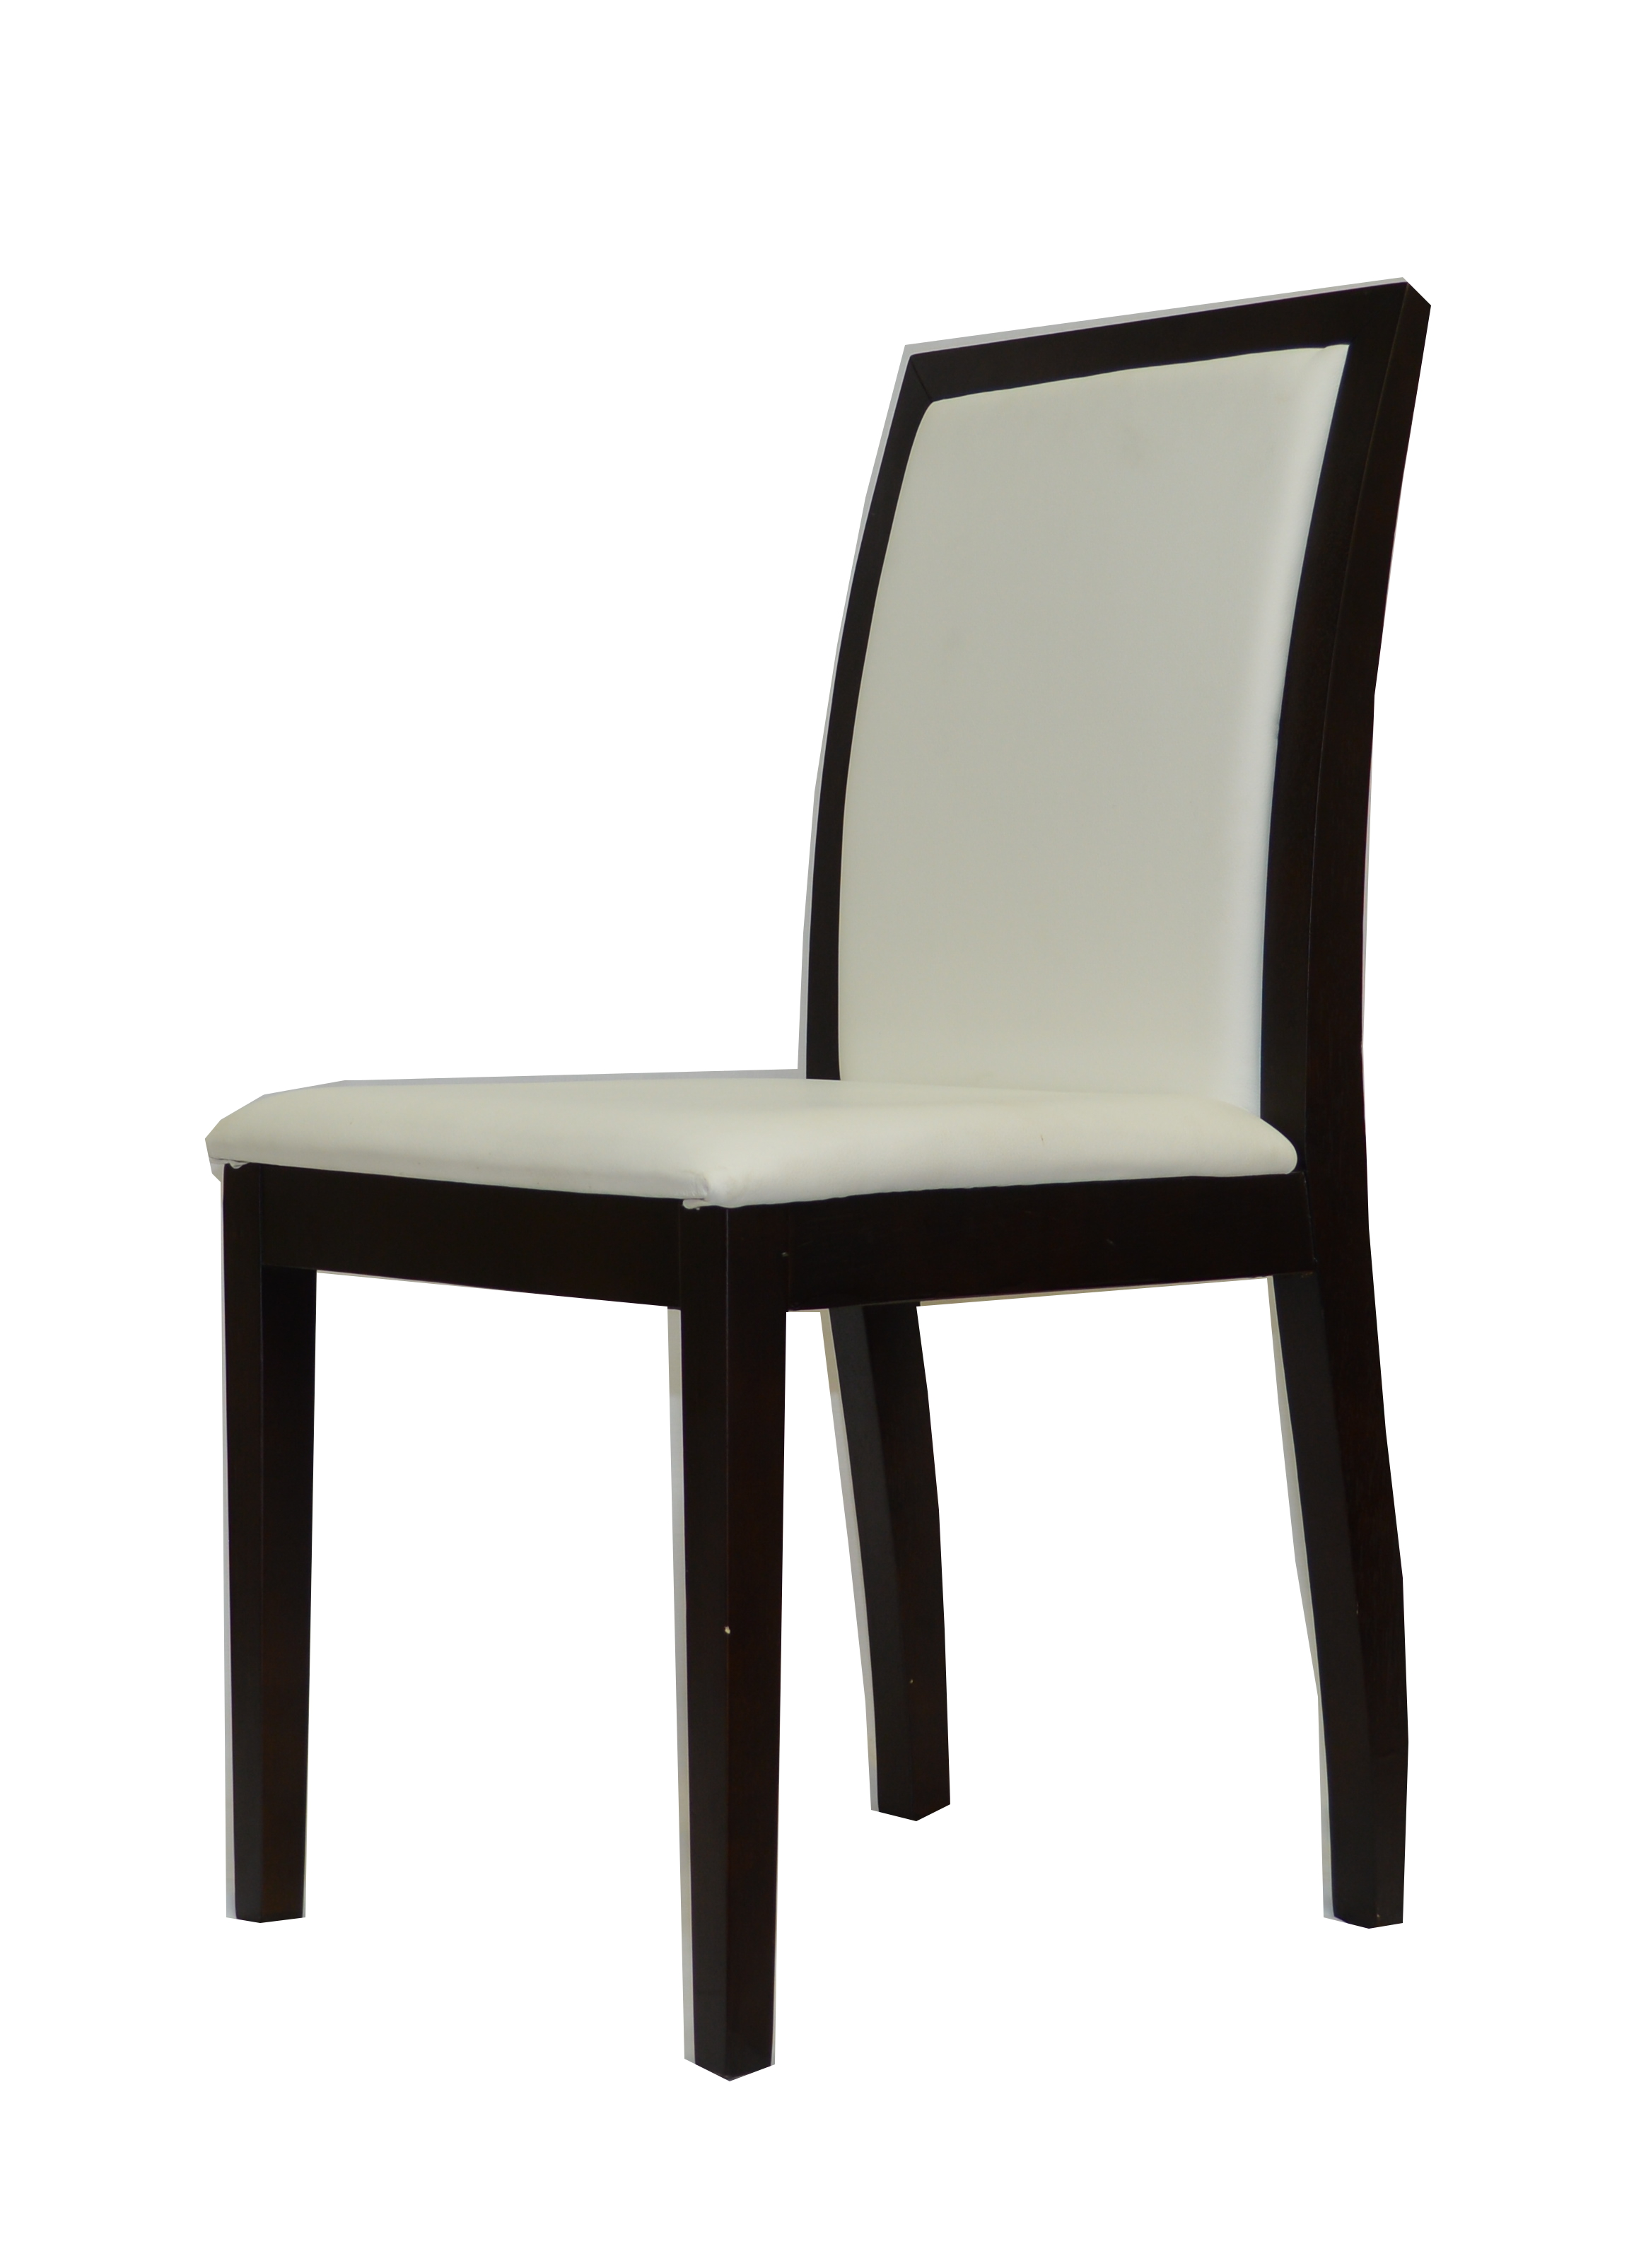 Source Furniture Brampton Chairs Stool Rental For Home Staging By Stagers Source In Toronto